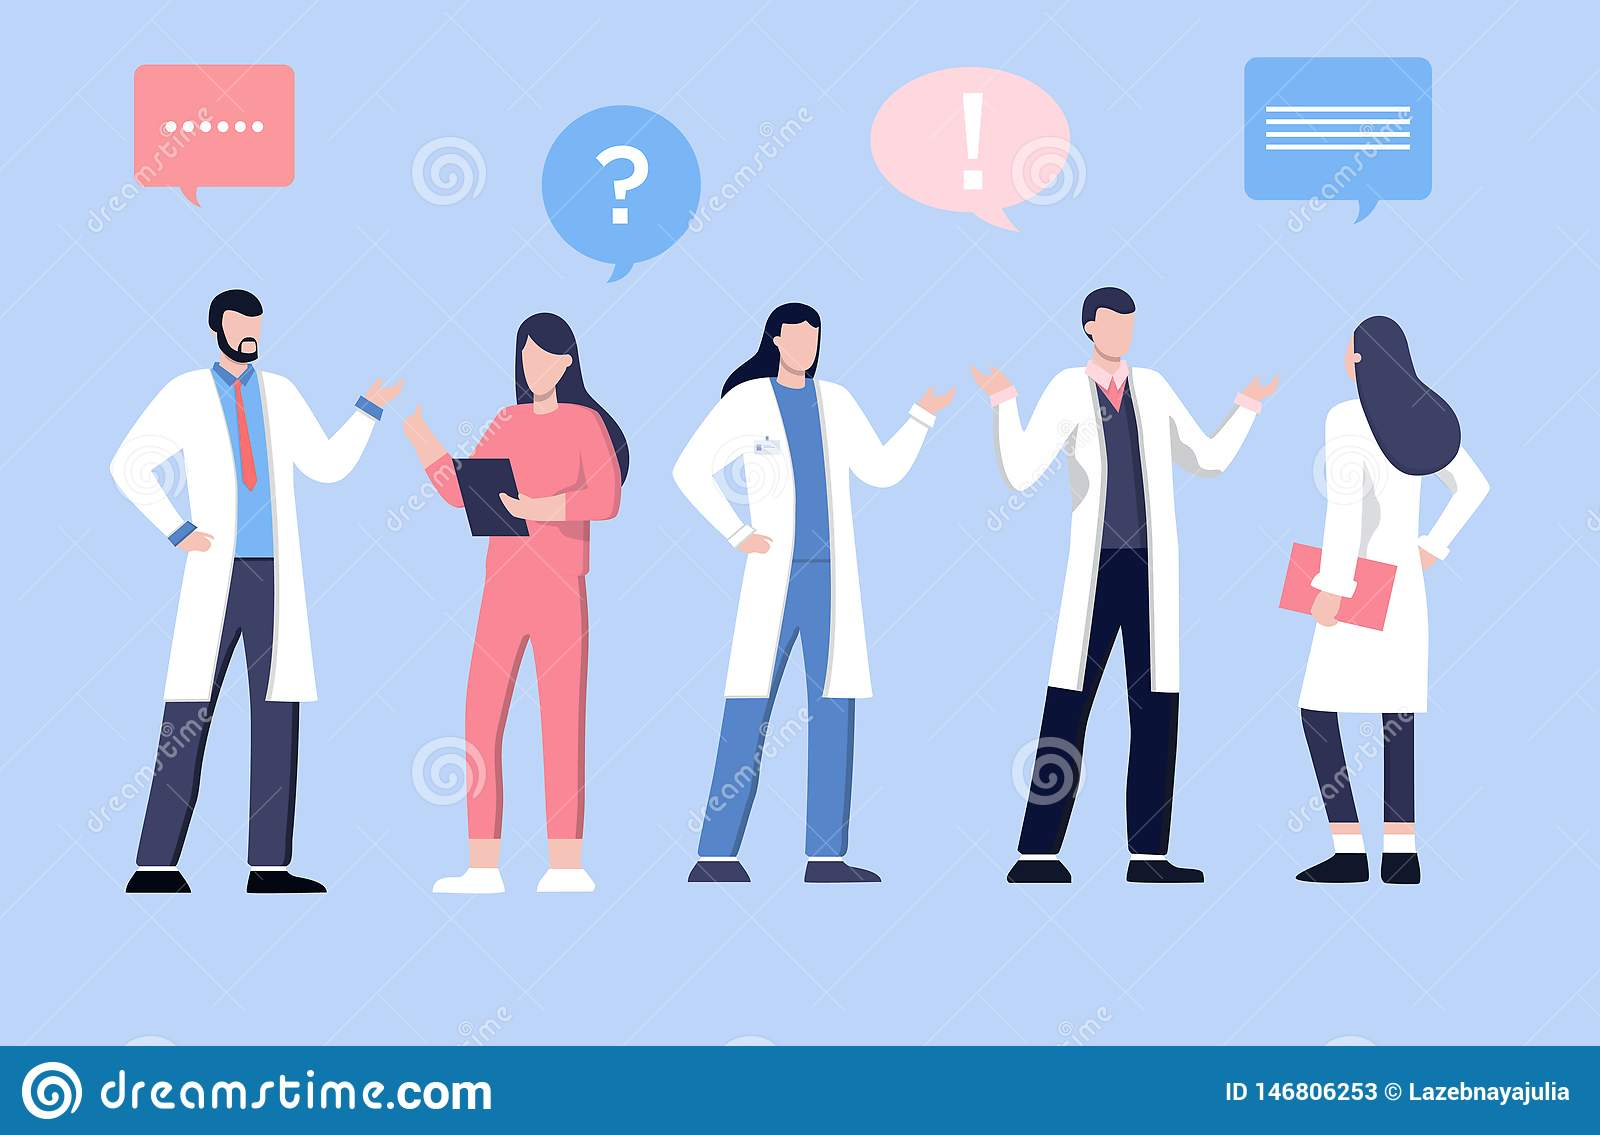 Male and feamle doctor talking with patients. Healthcare services, Ask a doctor. Therapist in uniform with stethoscope.